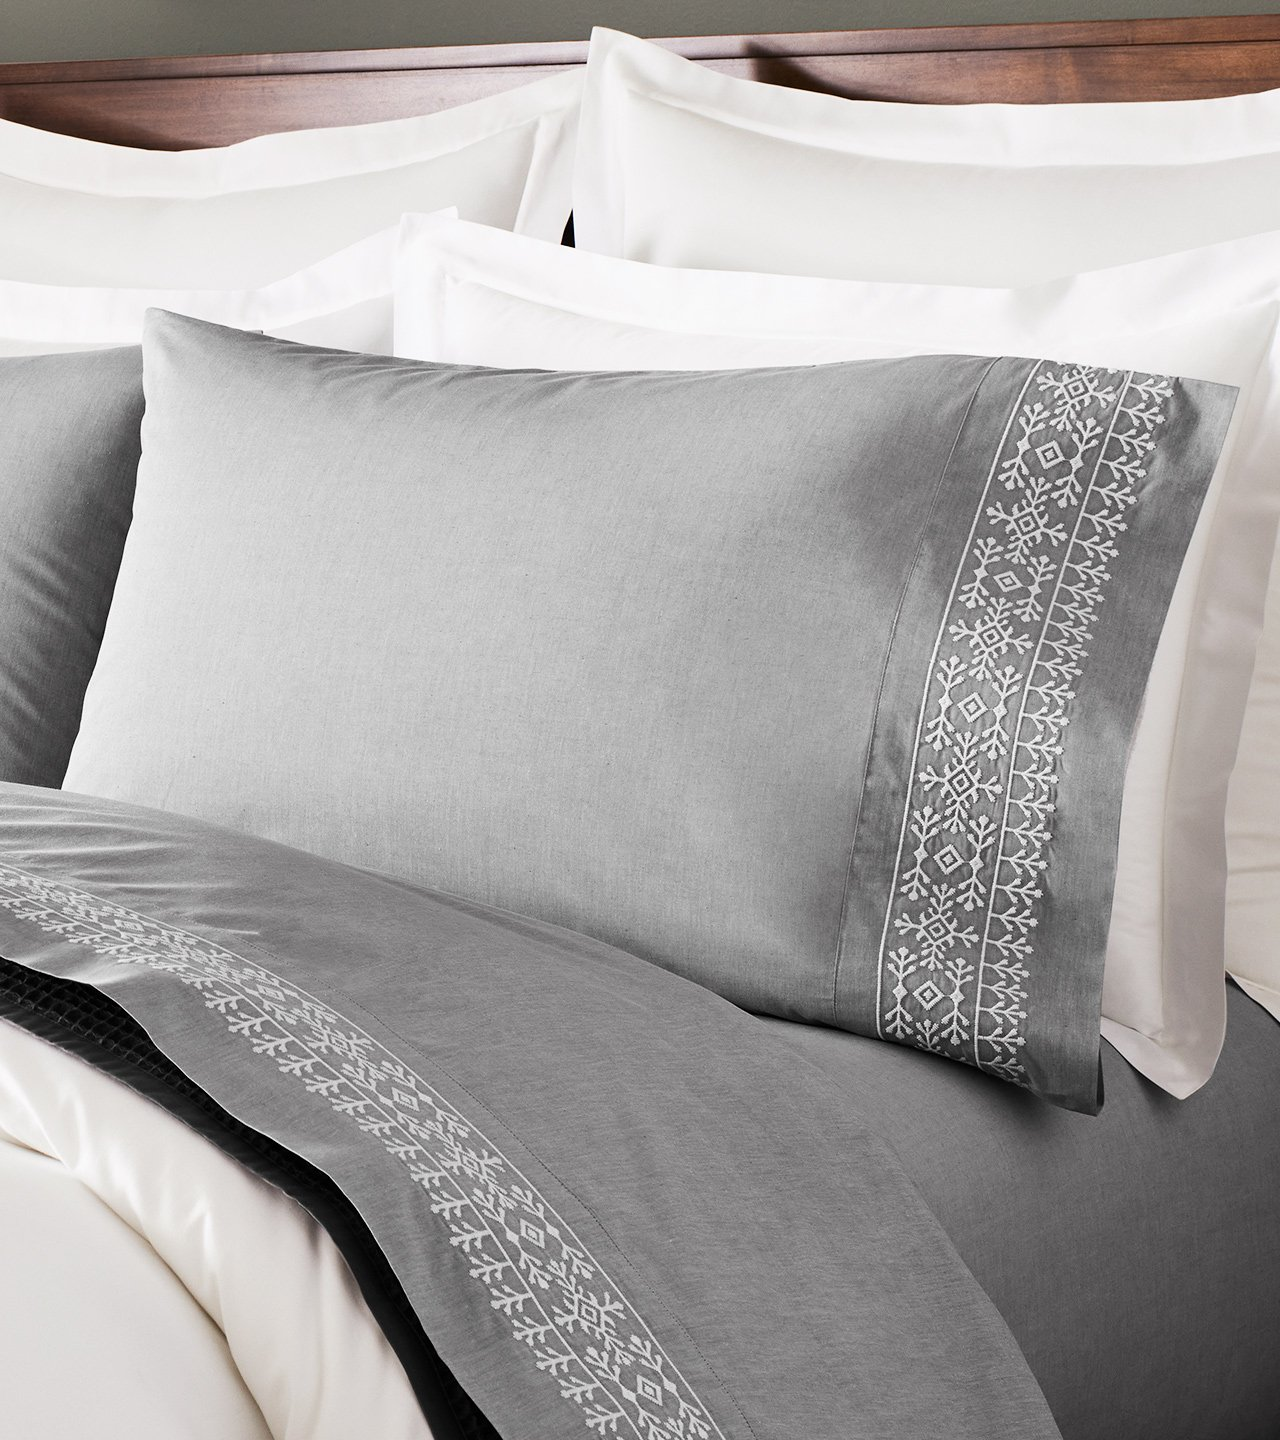 Chambray Embroidered Cottonfield Sheet Set   Boll & Branch ®